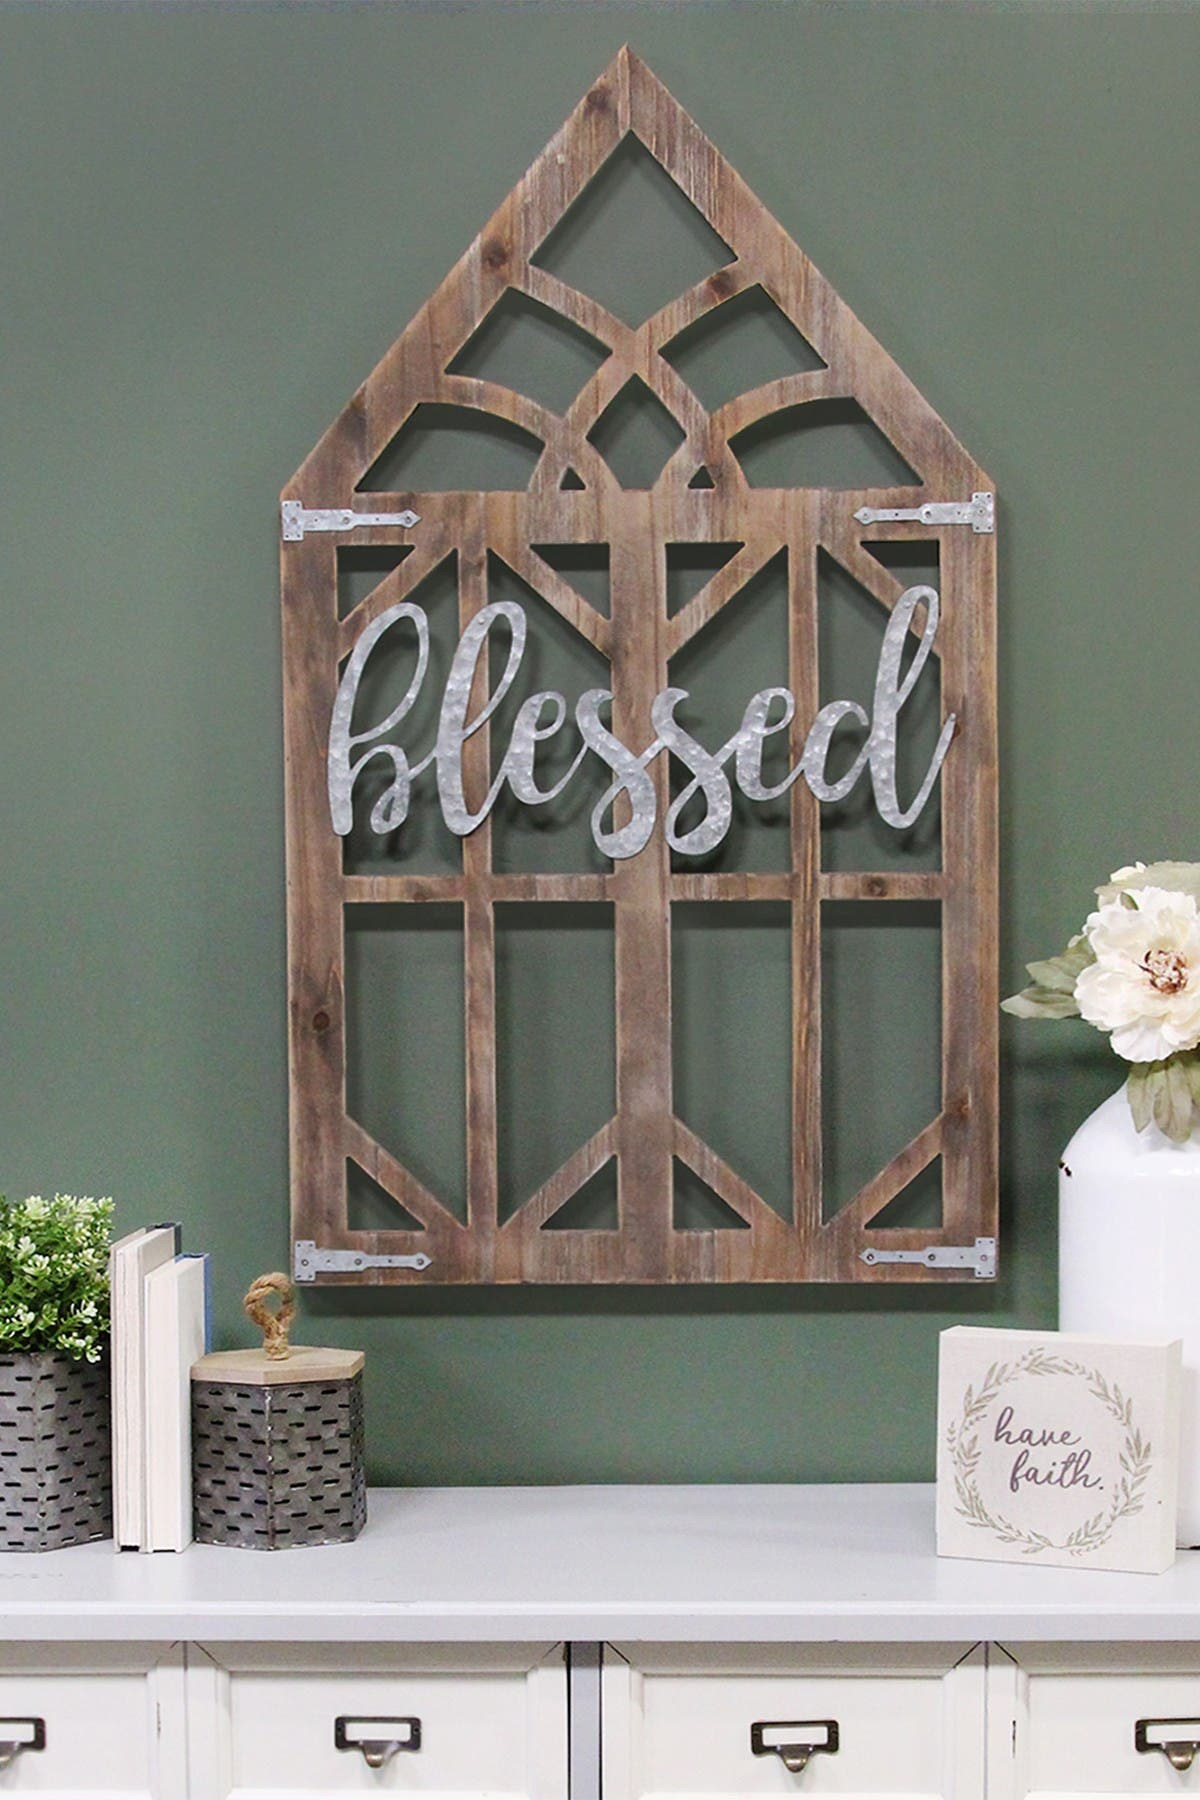 Stratton Home Walnut/Silver Blessed Laser Cut Wood Window Frame Wall Decor at Nordstrom Rack